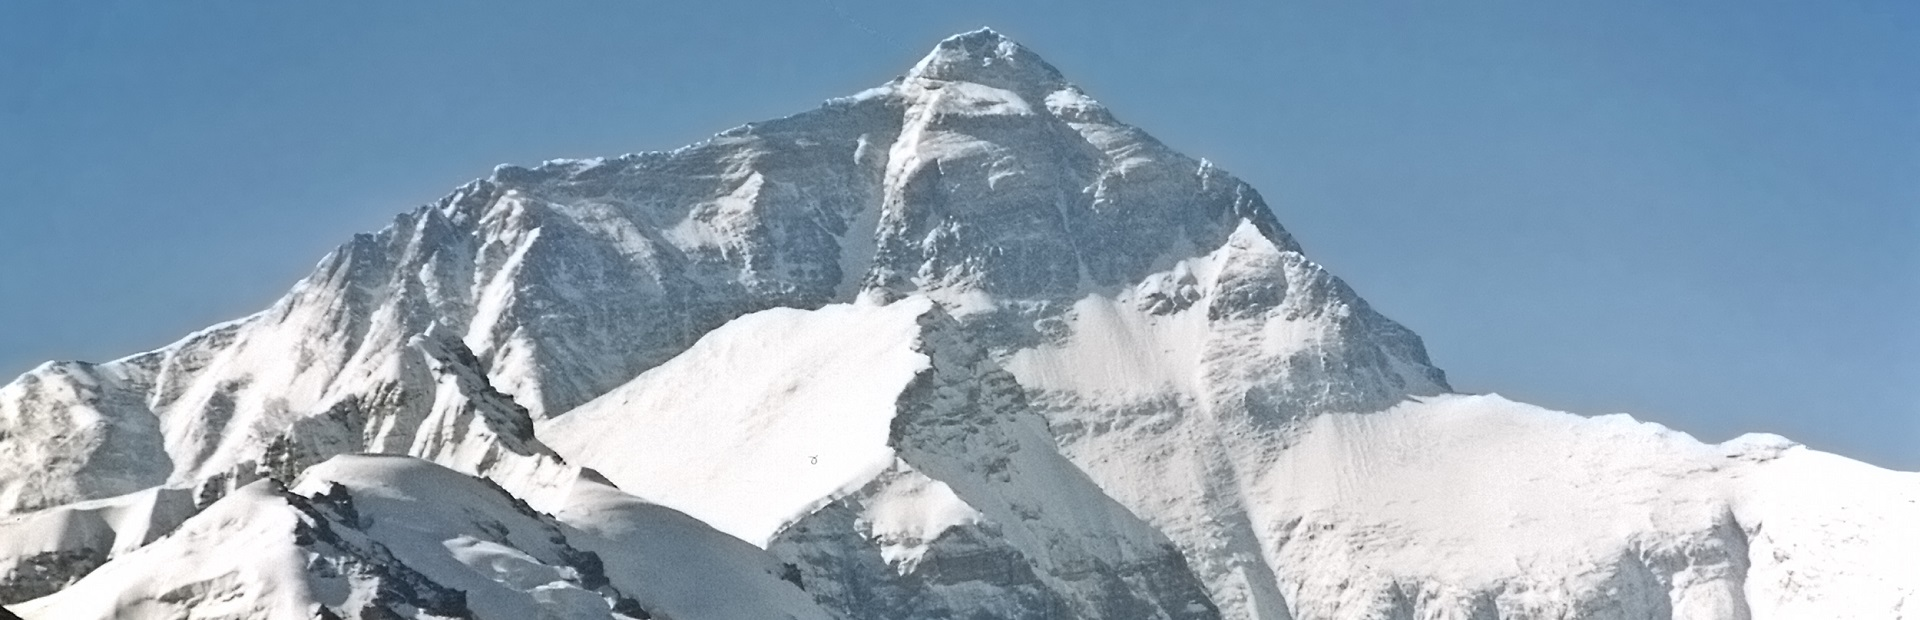 Mount Everest, the highest in the world, 8850m.